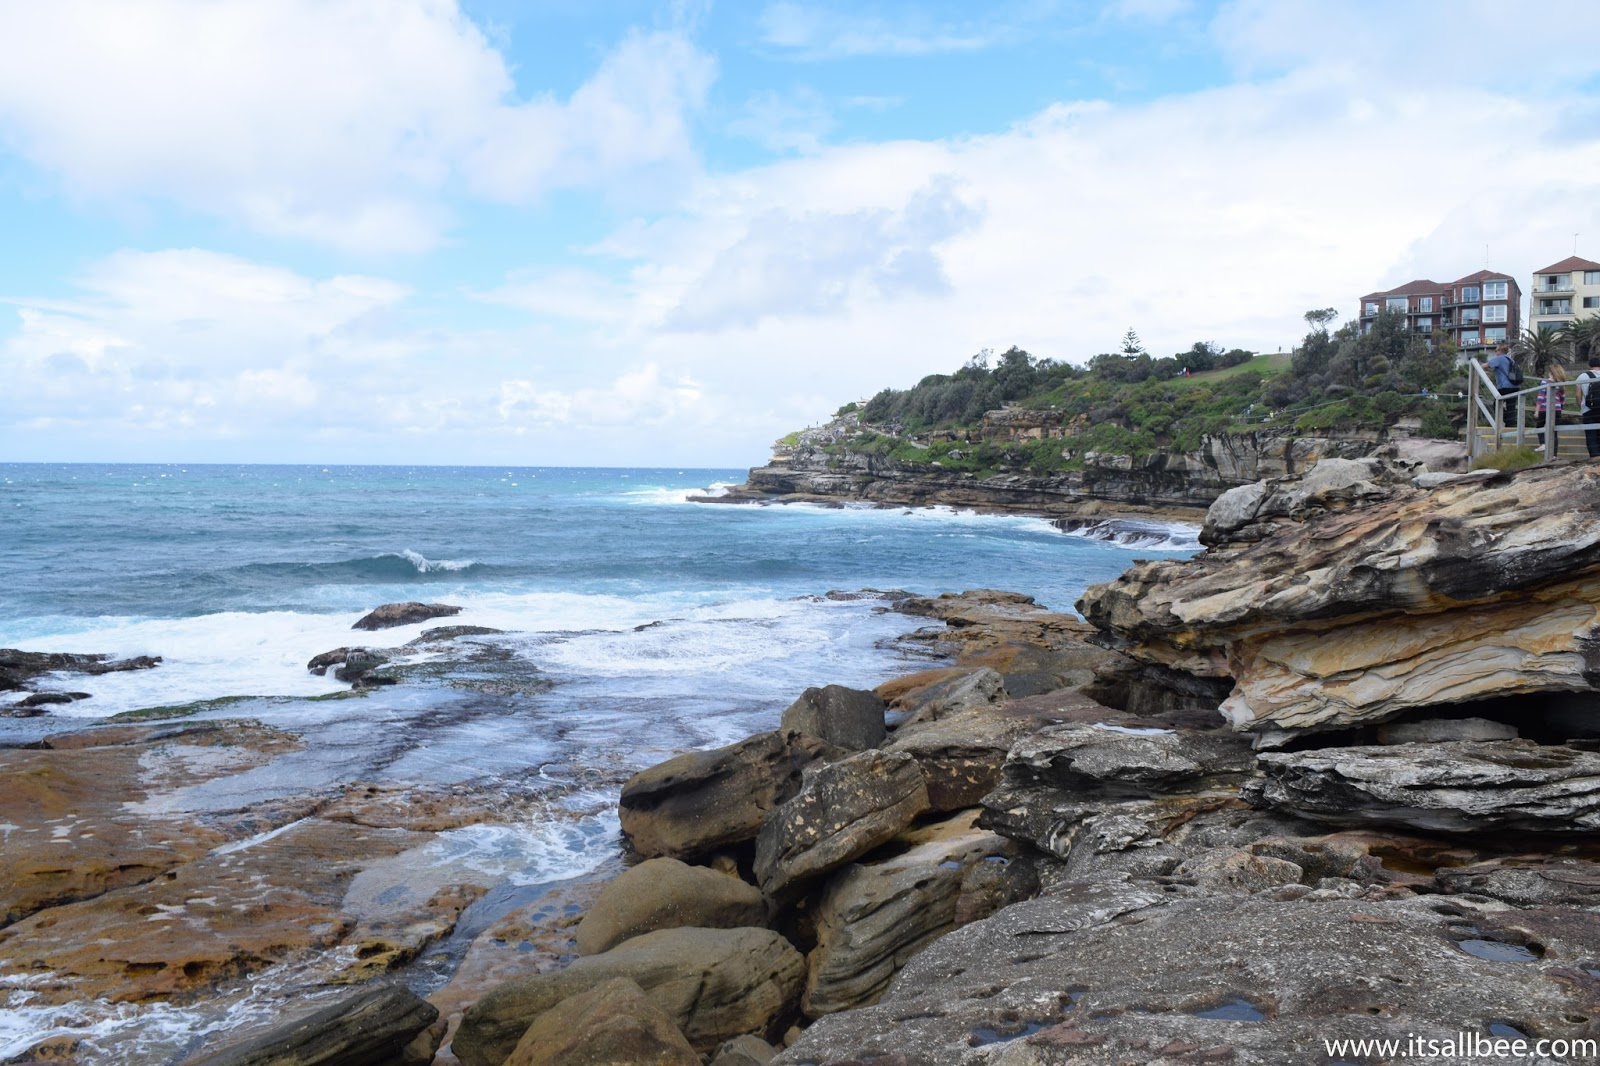 Sydney Beaches | A Day Out On Sydney's Bondi Beach